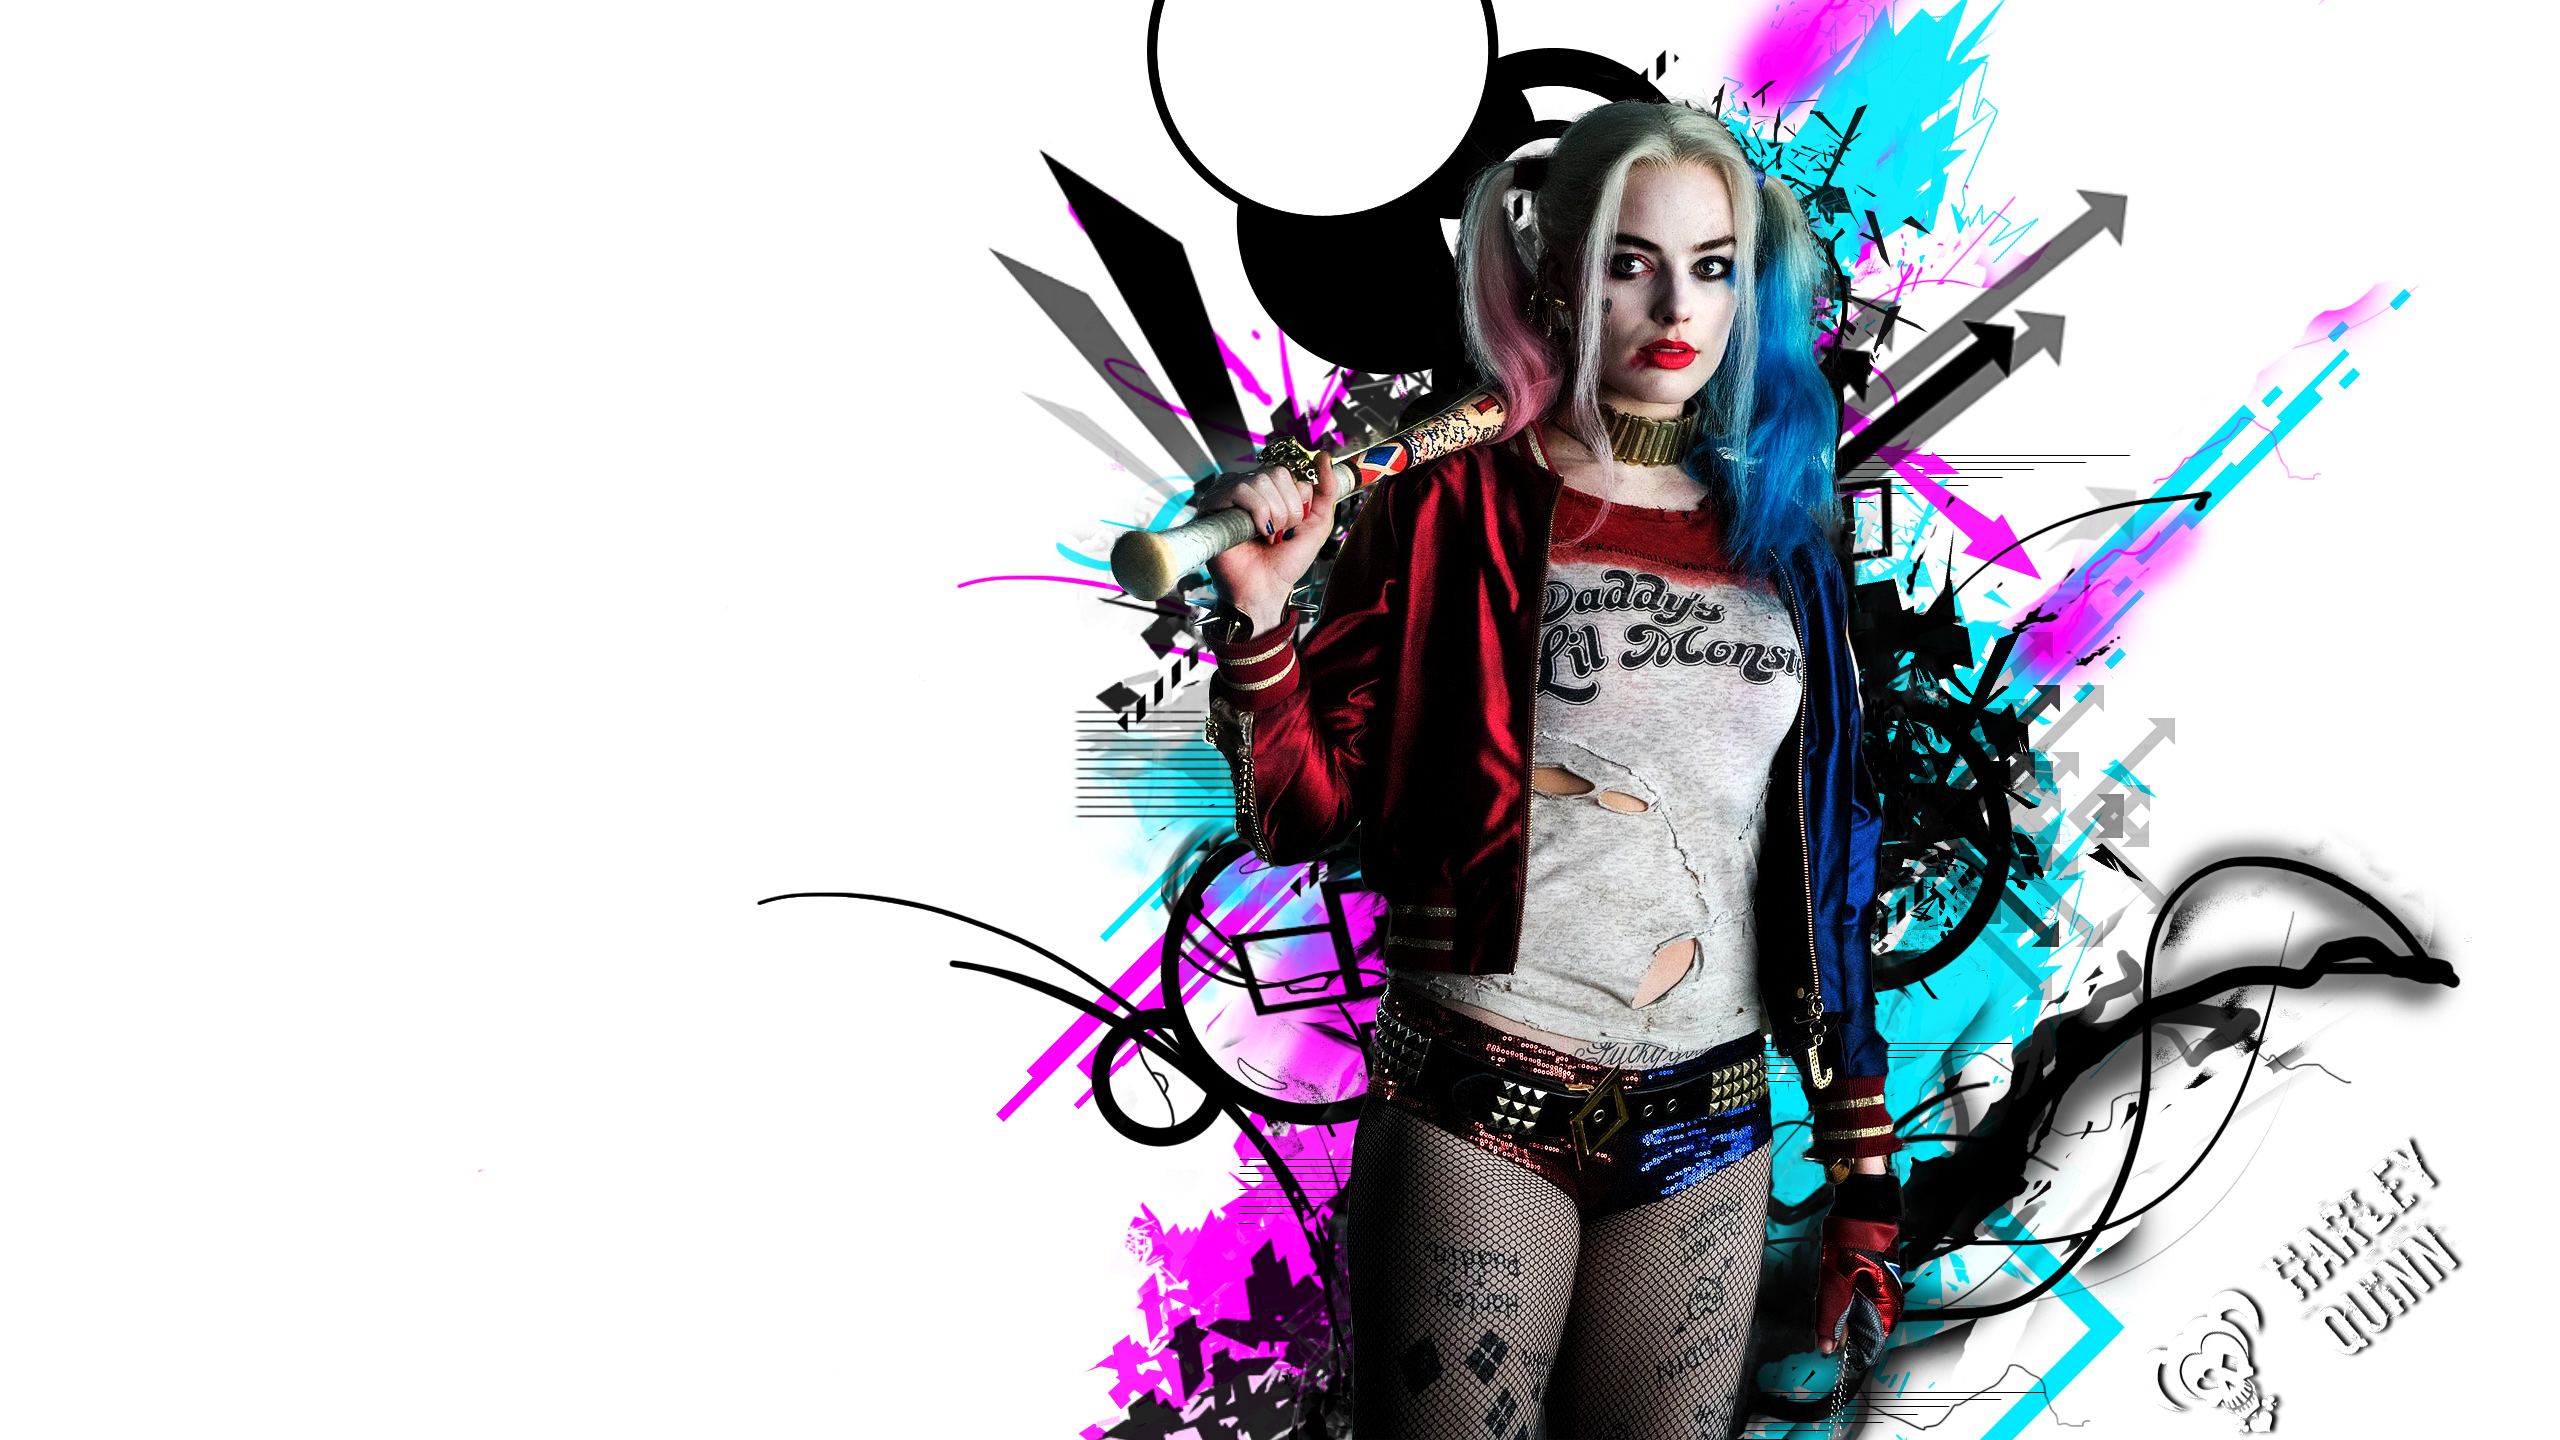 Harley quinn hd hd movies 4k wallpapers images - Harley quinn hd wallpapers for android ...